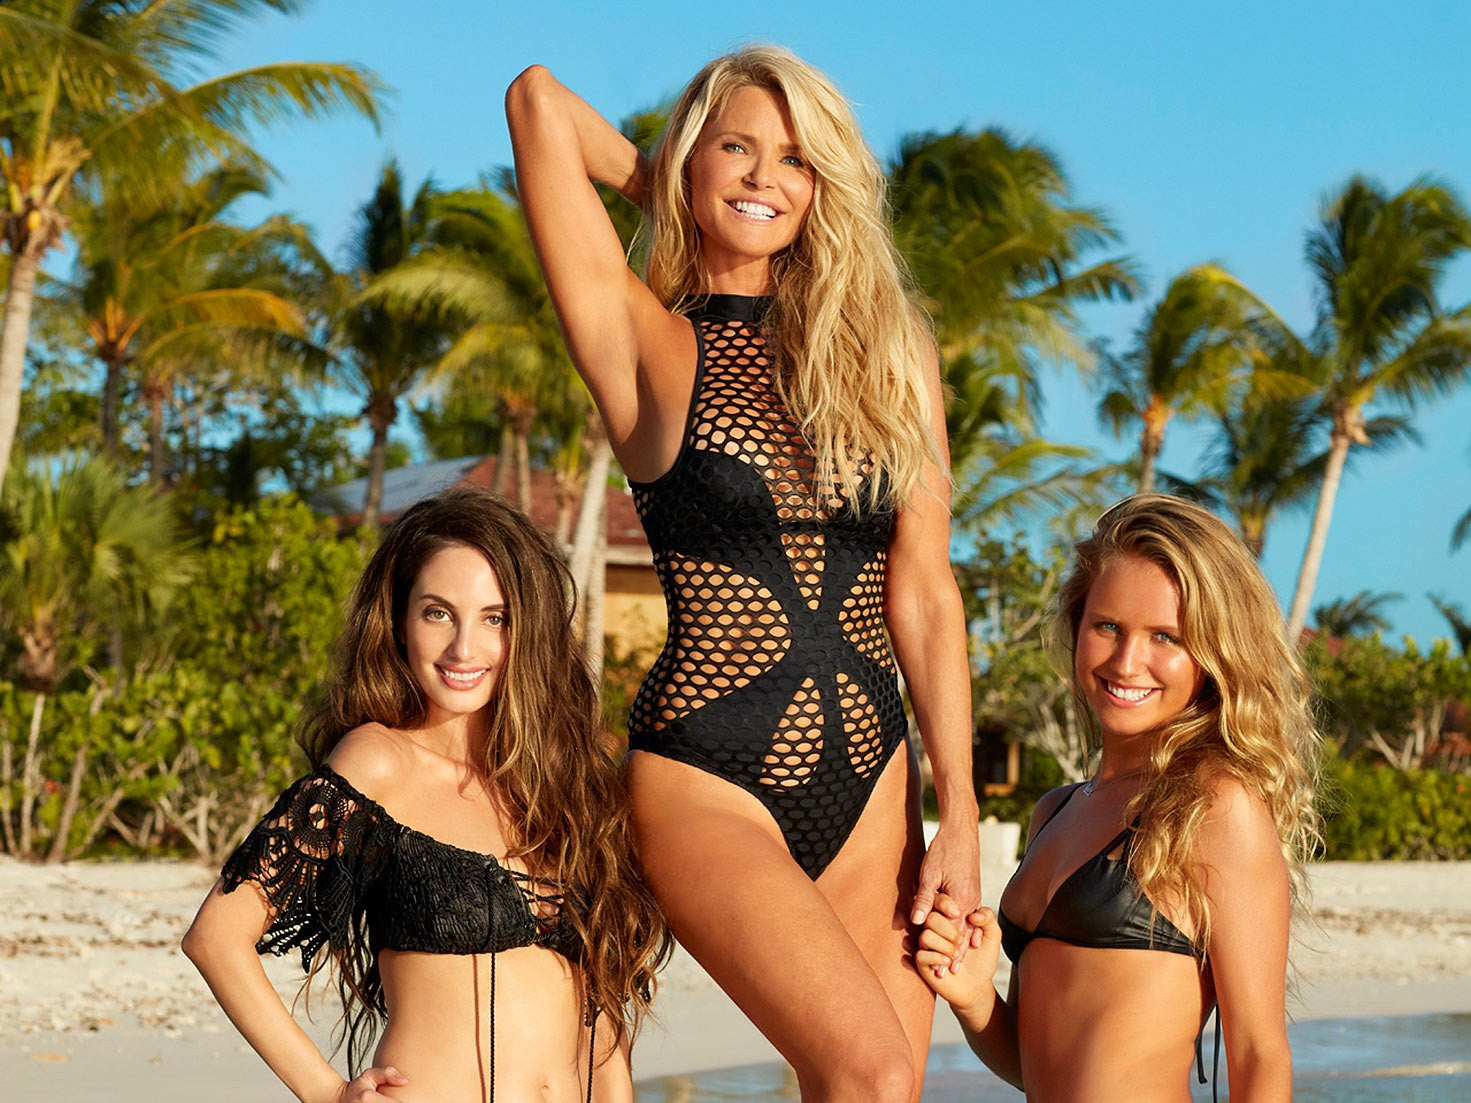 Christie Brinkley Breaking Stereotypes at Age 63